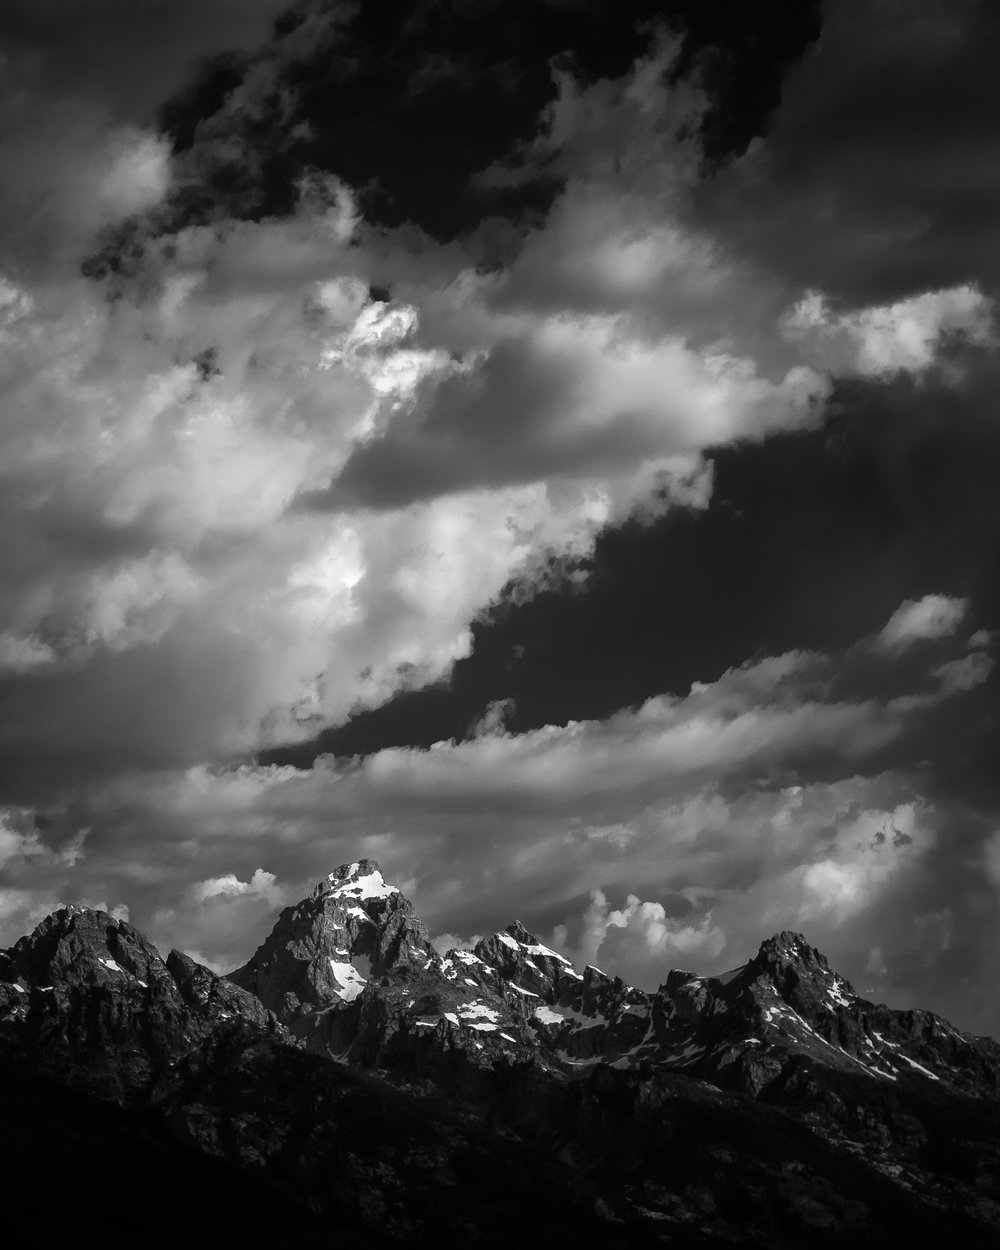 A black and white photograph by fine artist Cody Schultz, this high-contrast photograph of the Grand Teton mountain range is one of few vertical images made by the artist. The glaciers on the mountaintops glisten a pure white, contrasted by the black and deep grays of the rest of the mountain. The sky, full of clouds, helps to create drama within the scene.